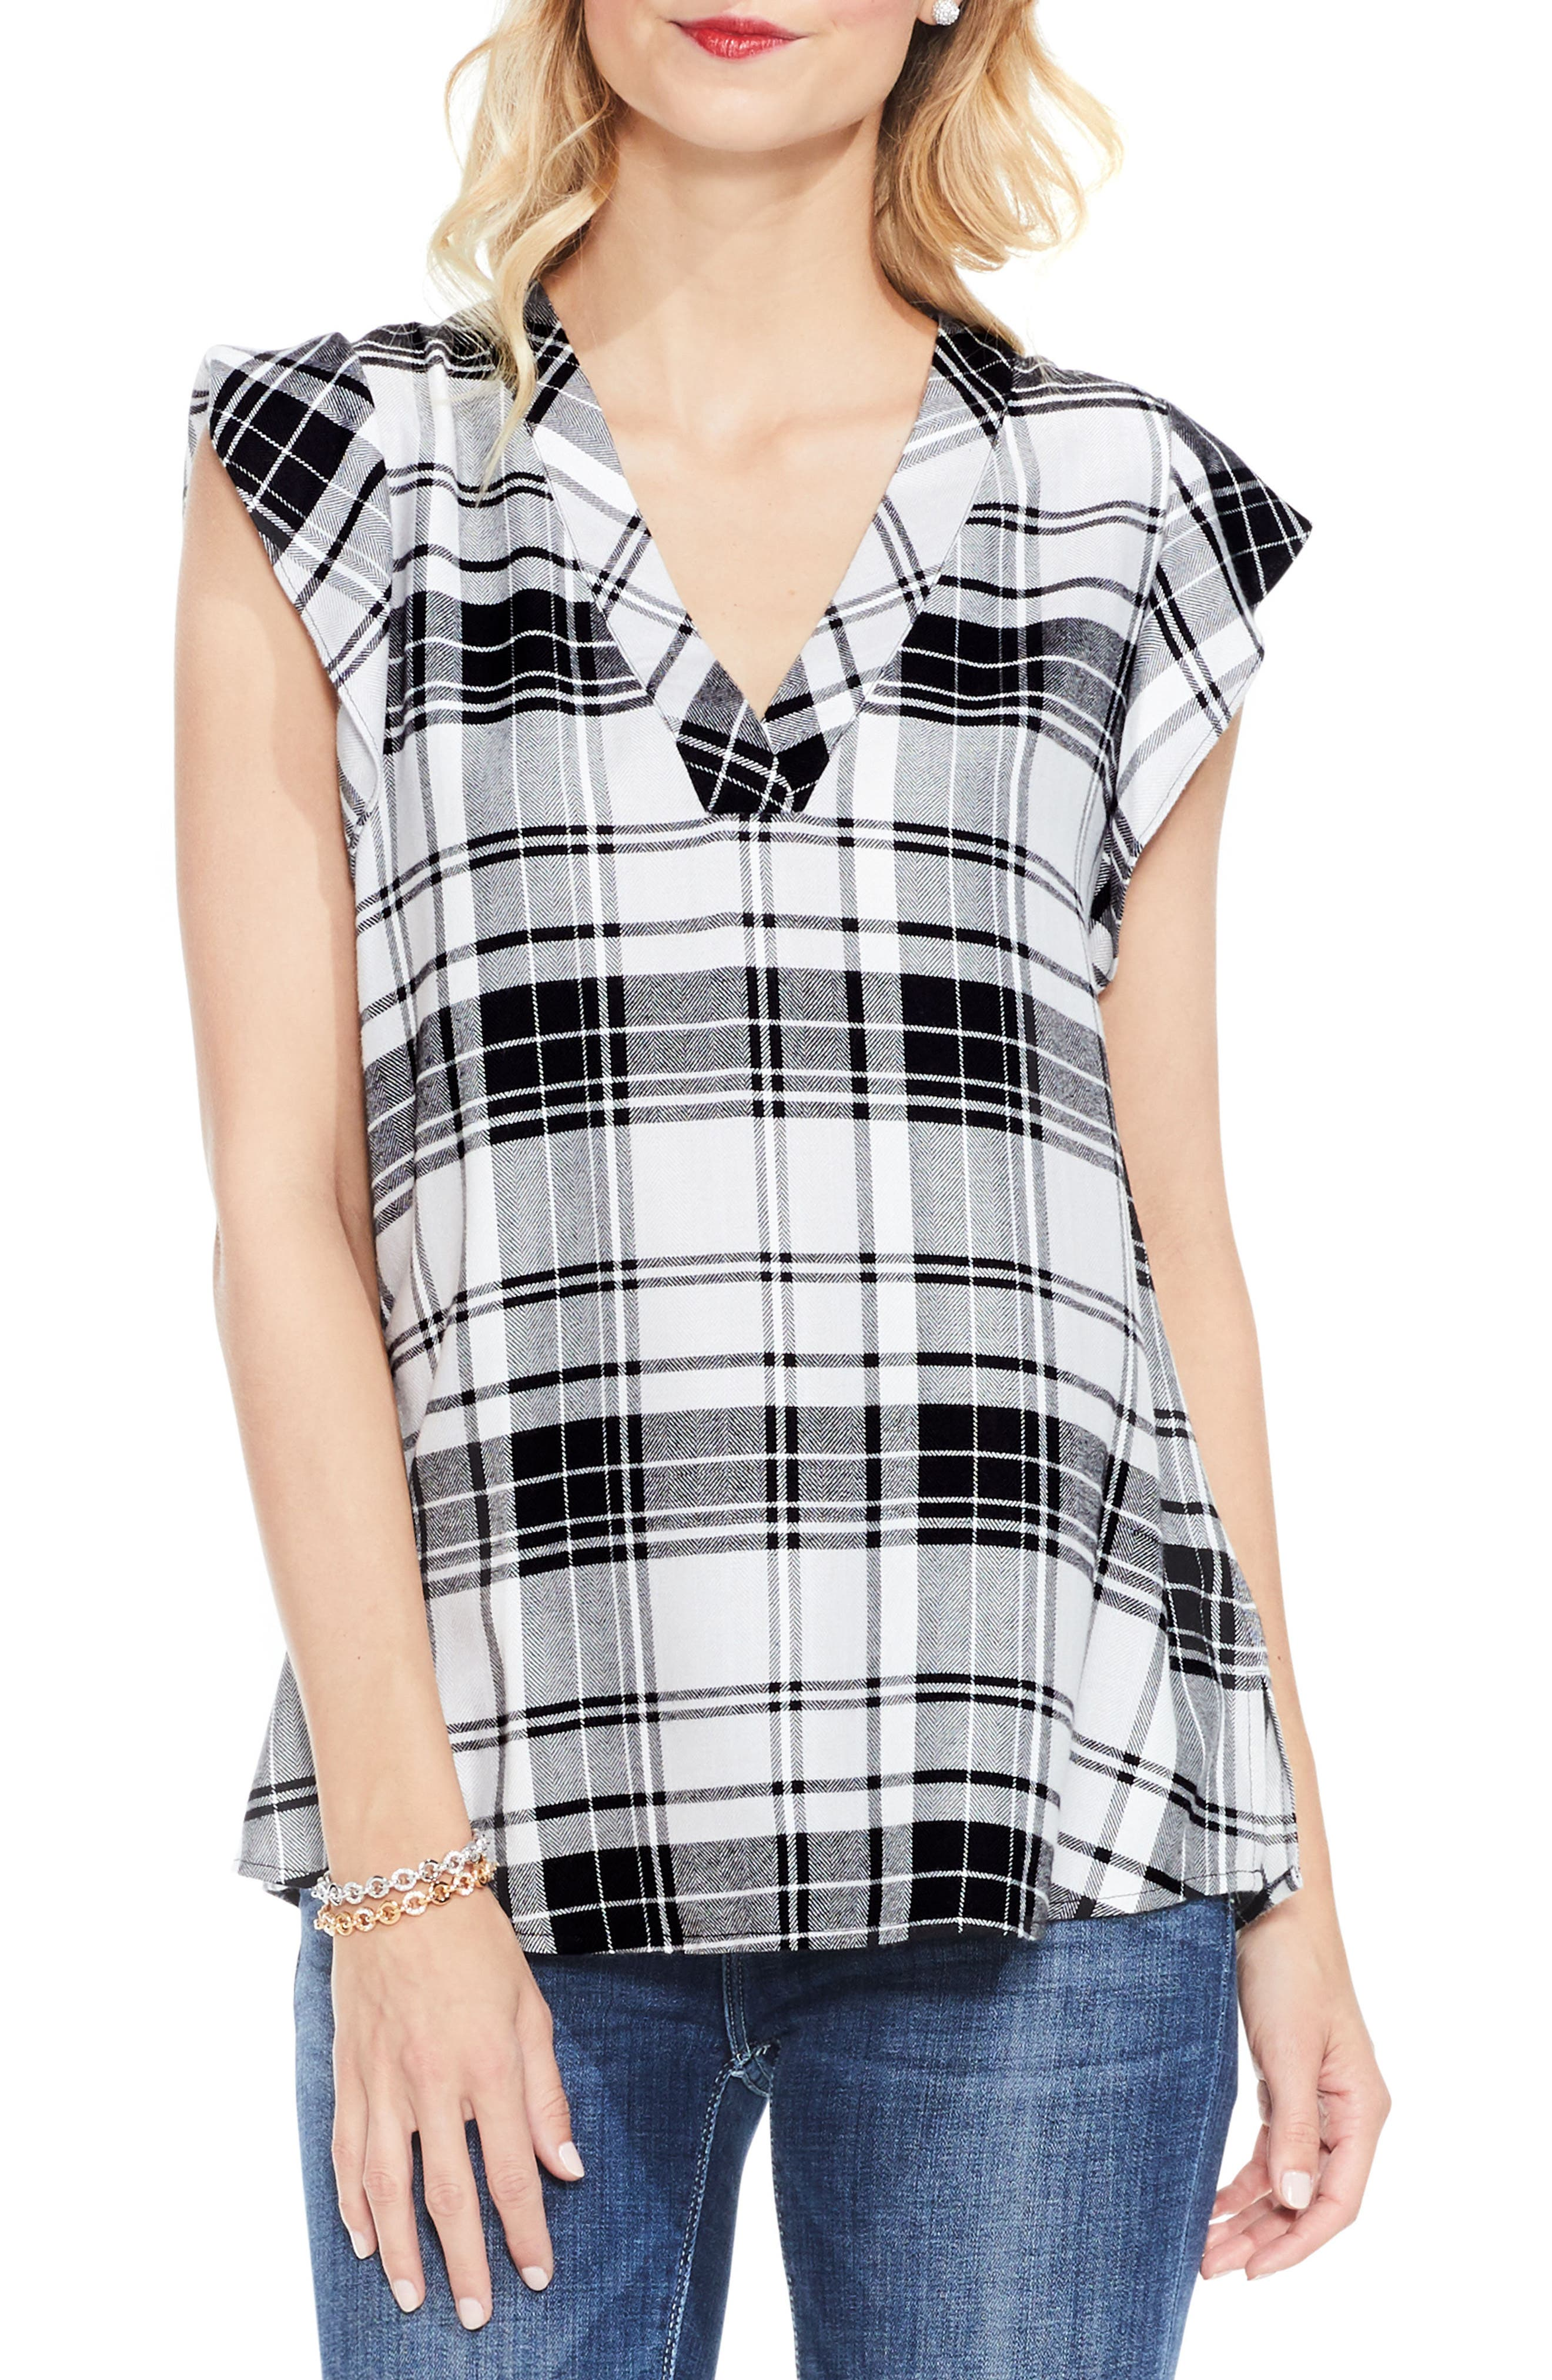 Main Image - Two by Vince Camuto Bedford Plaid Top